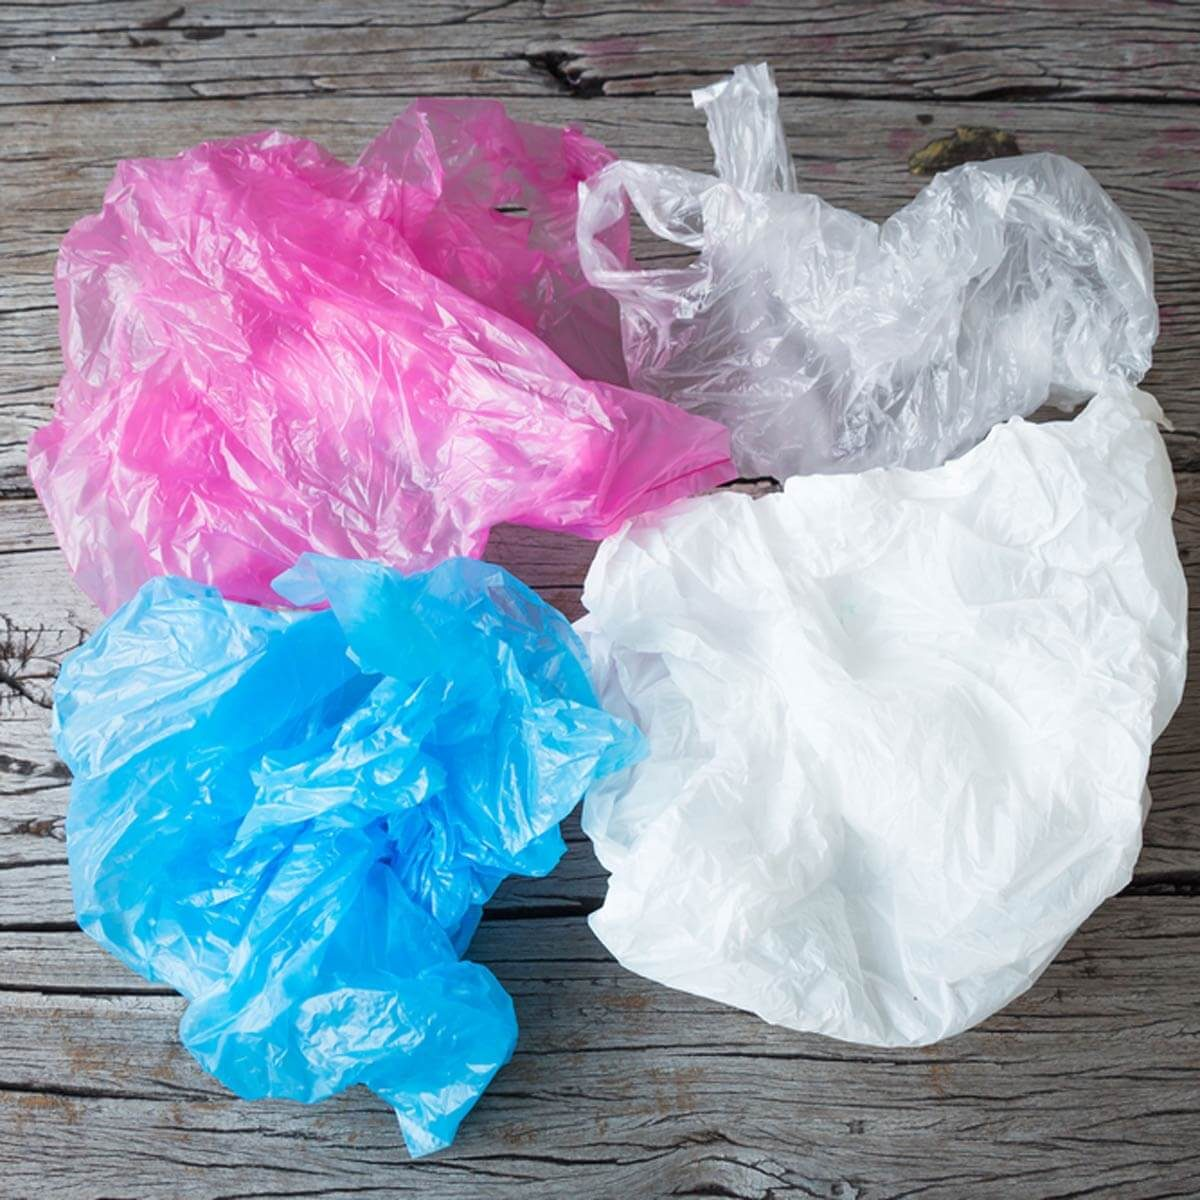 Plastic Bags are Recyclable Just Dont Put Them in the Bin